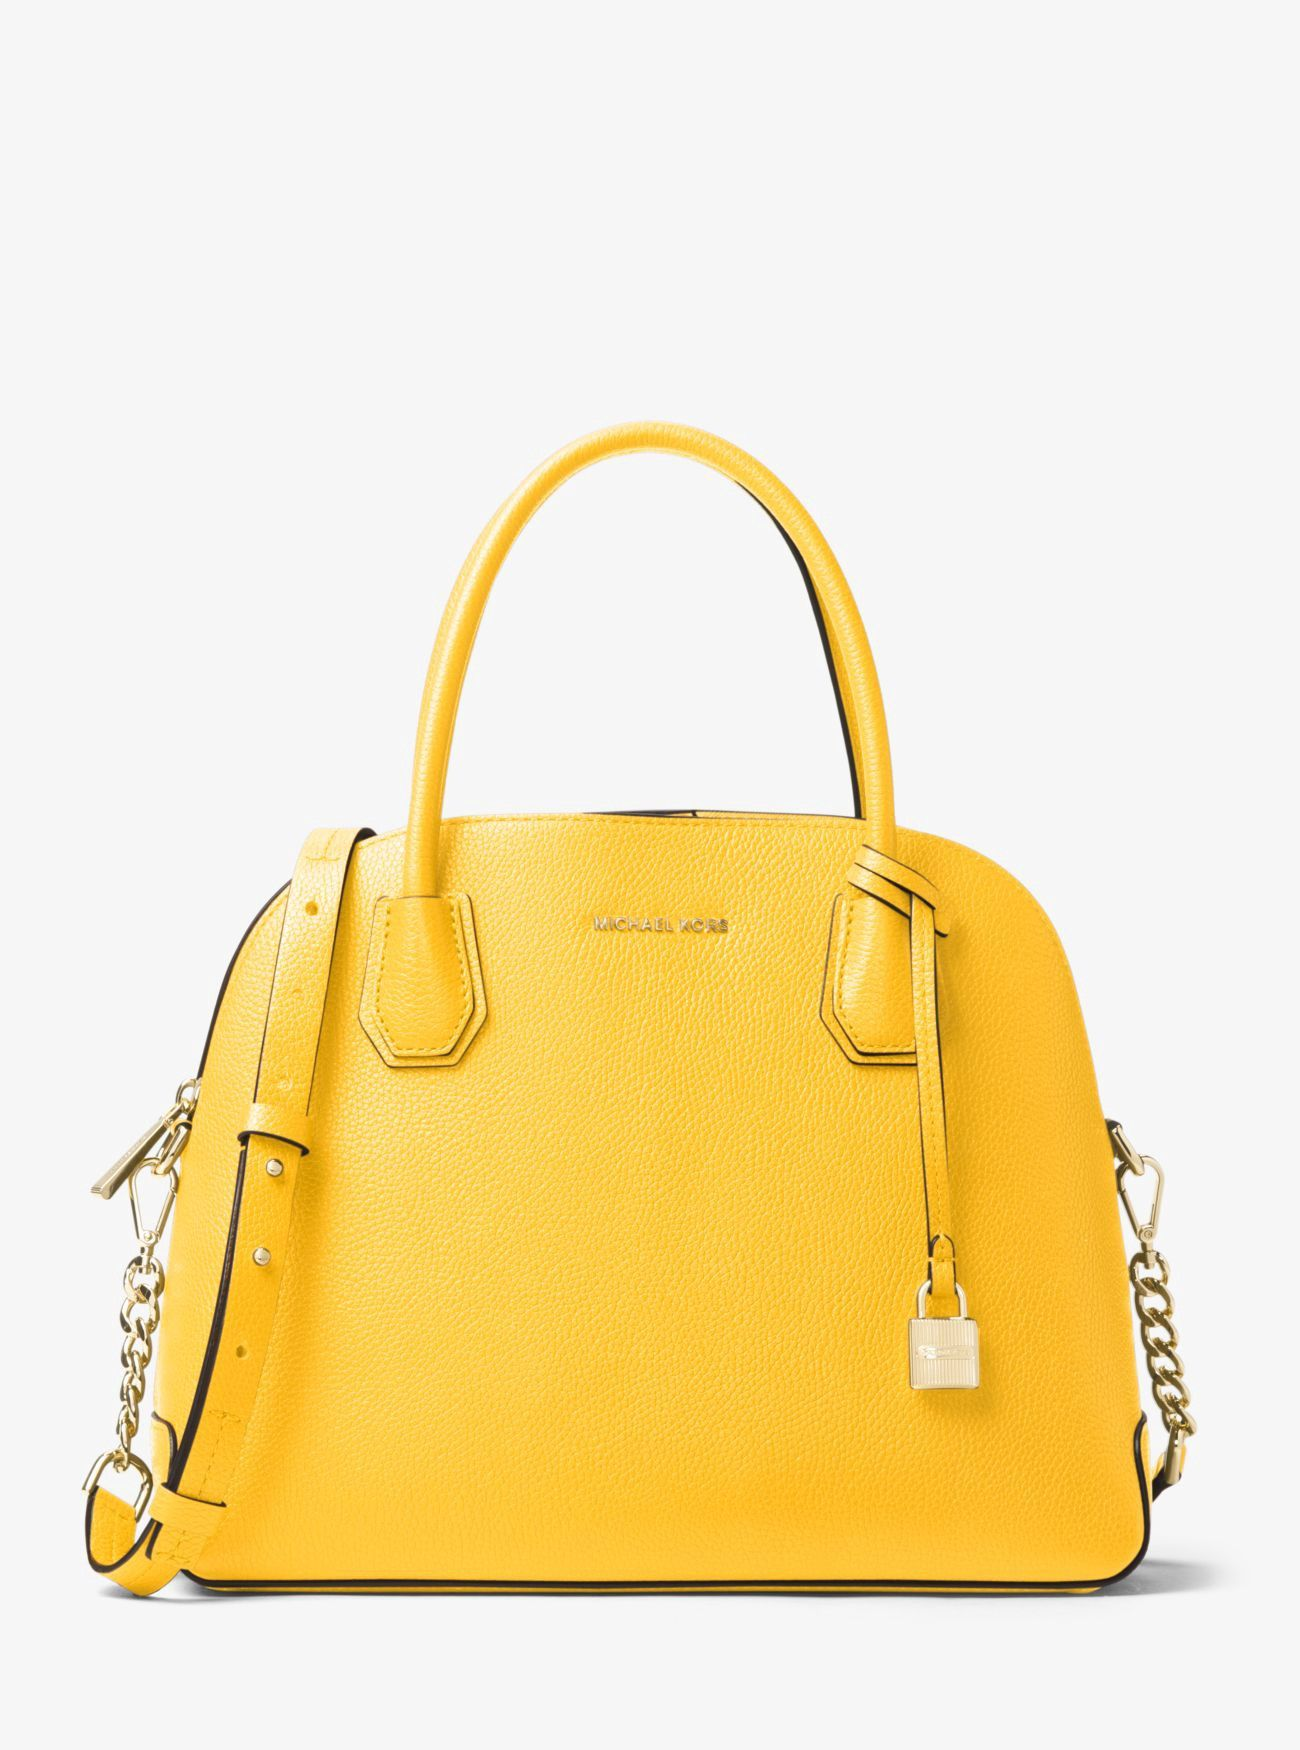 e0397f004b2f MICHAEL KORS Mercer Large Leather Dome Satchel. #michaelkors #bags  #polyester #leather #lining #satchel #shoulder bags #hand bags #